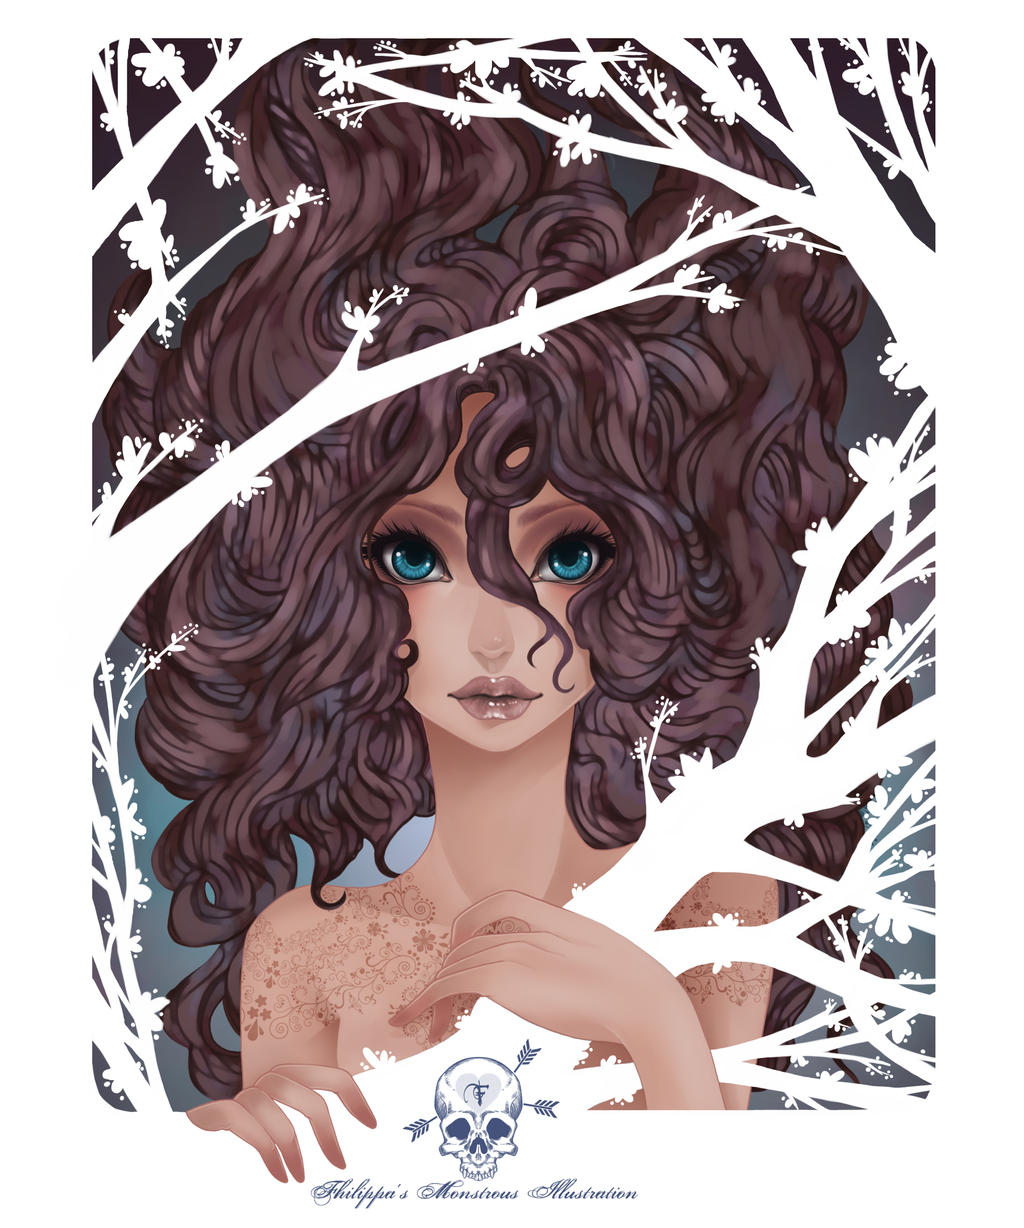 Tree Hugging girl by Viking-Princess on DeviantArt